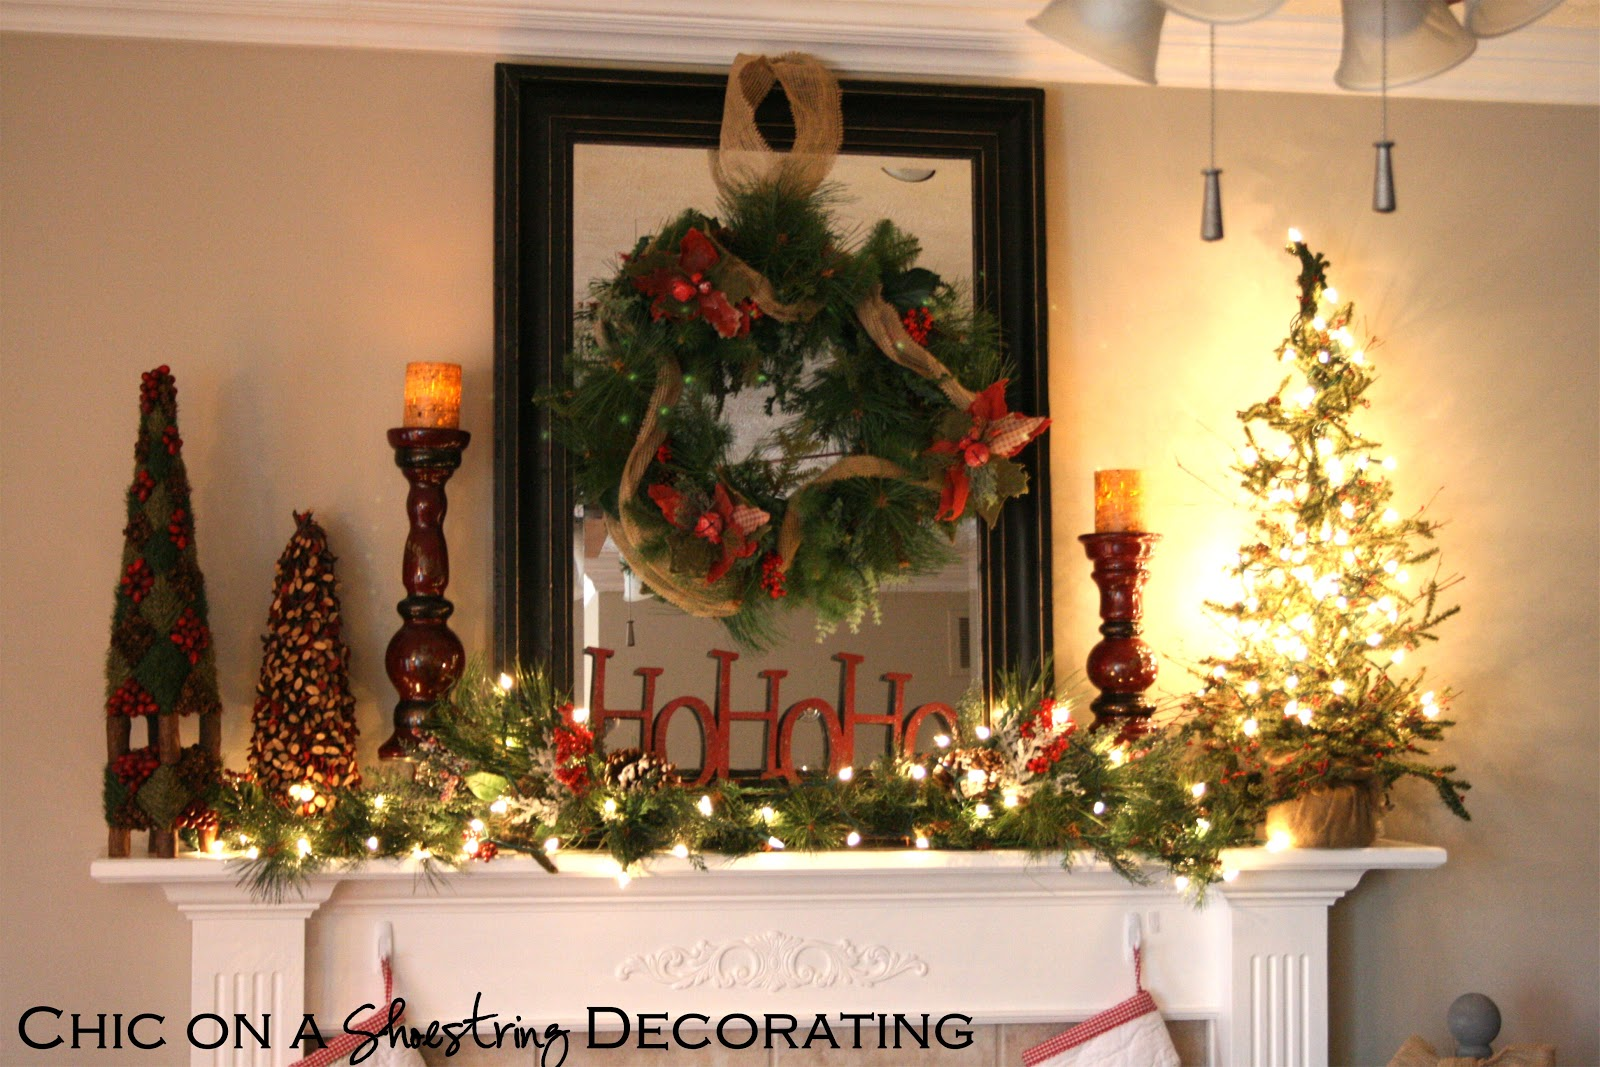 Chic on a shoestring decorating rustic christmas mantel for Home christmas decorations ideas